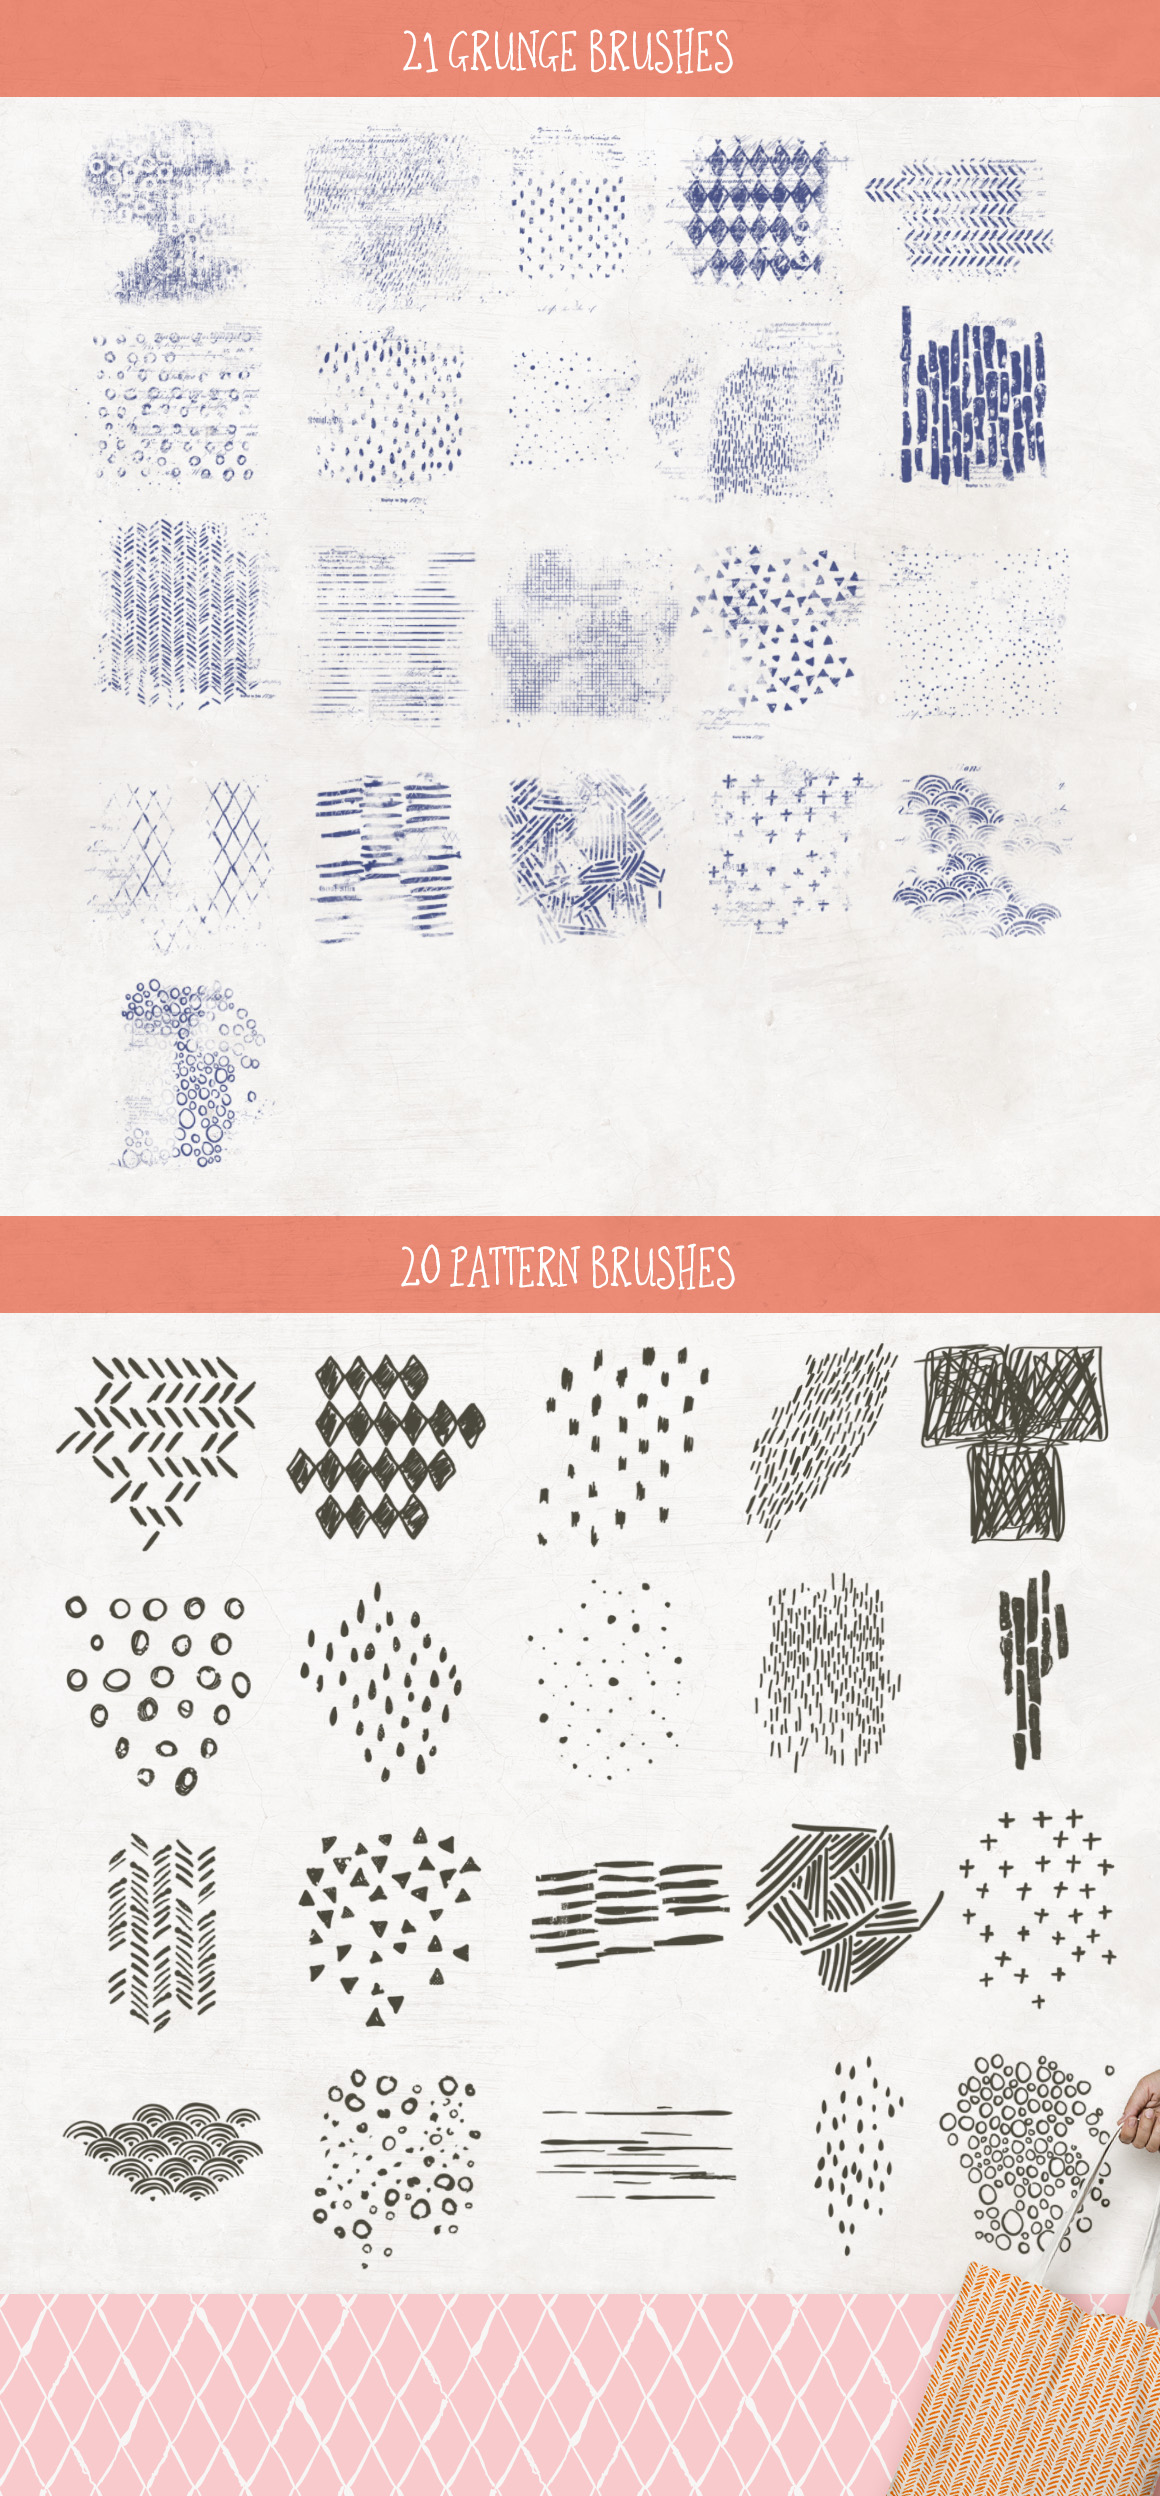 Handmade Patterns and Textures